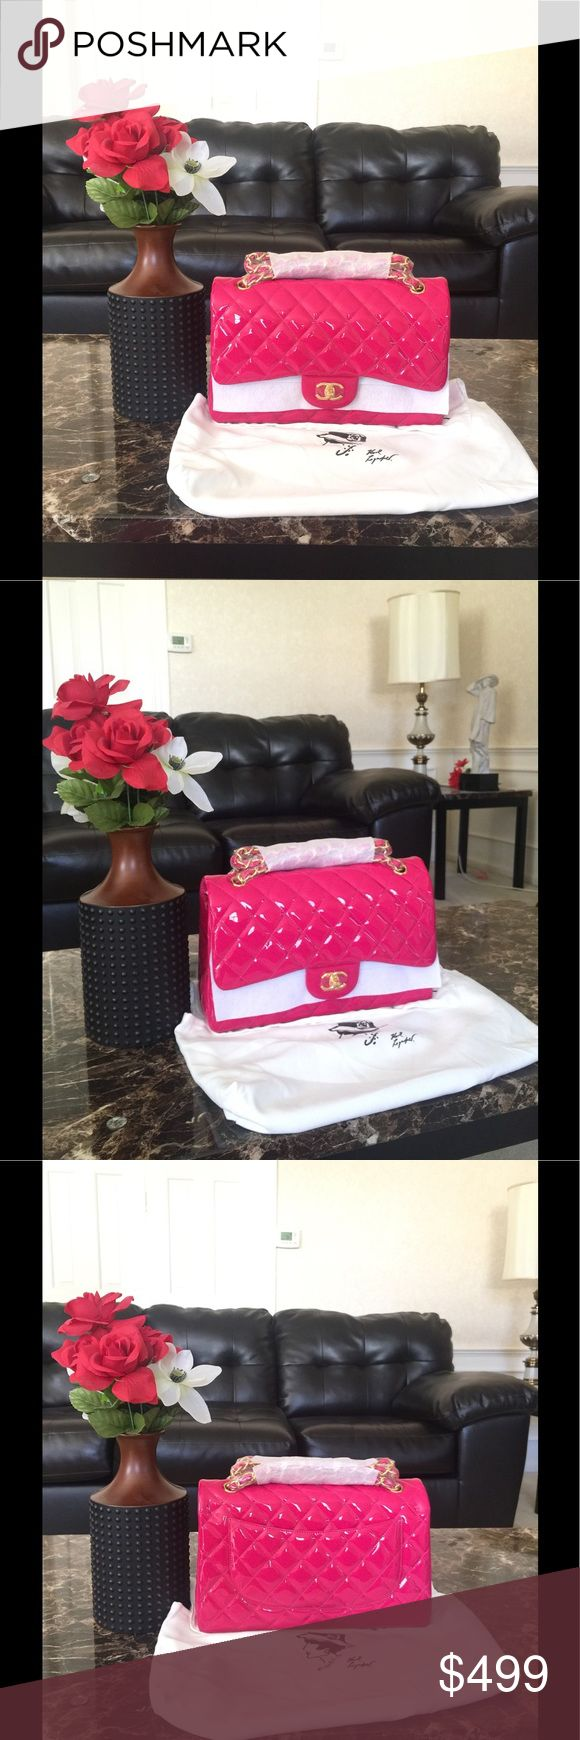 Pink Chanel jumbo flap bag Just received this Pink Chanel jumbo flap bag. Brand new with tag. Price reflects authenticity. No trades! Bags Shoulder Bags